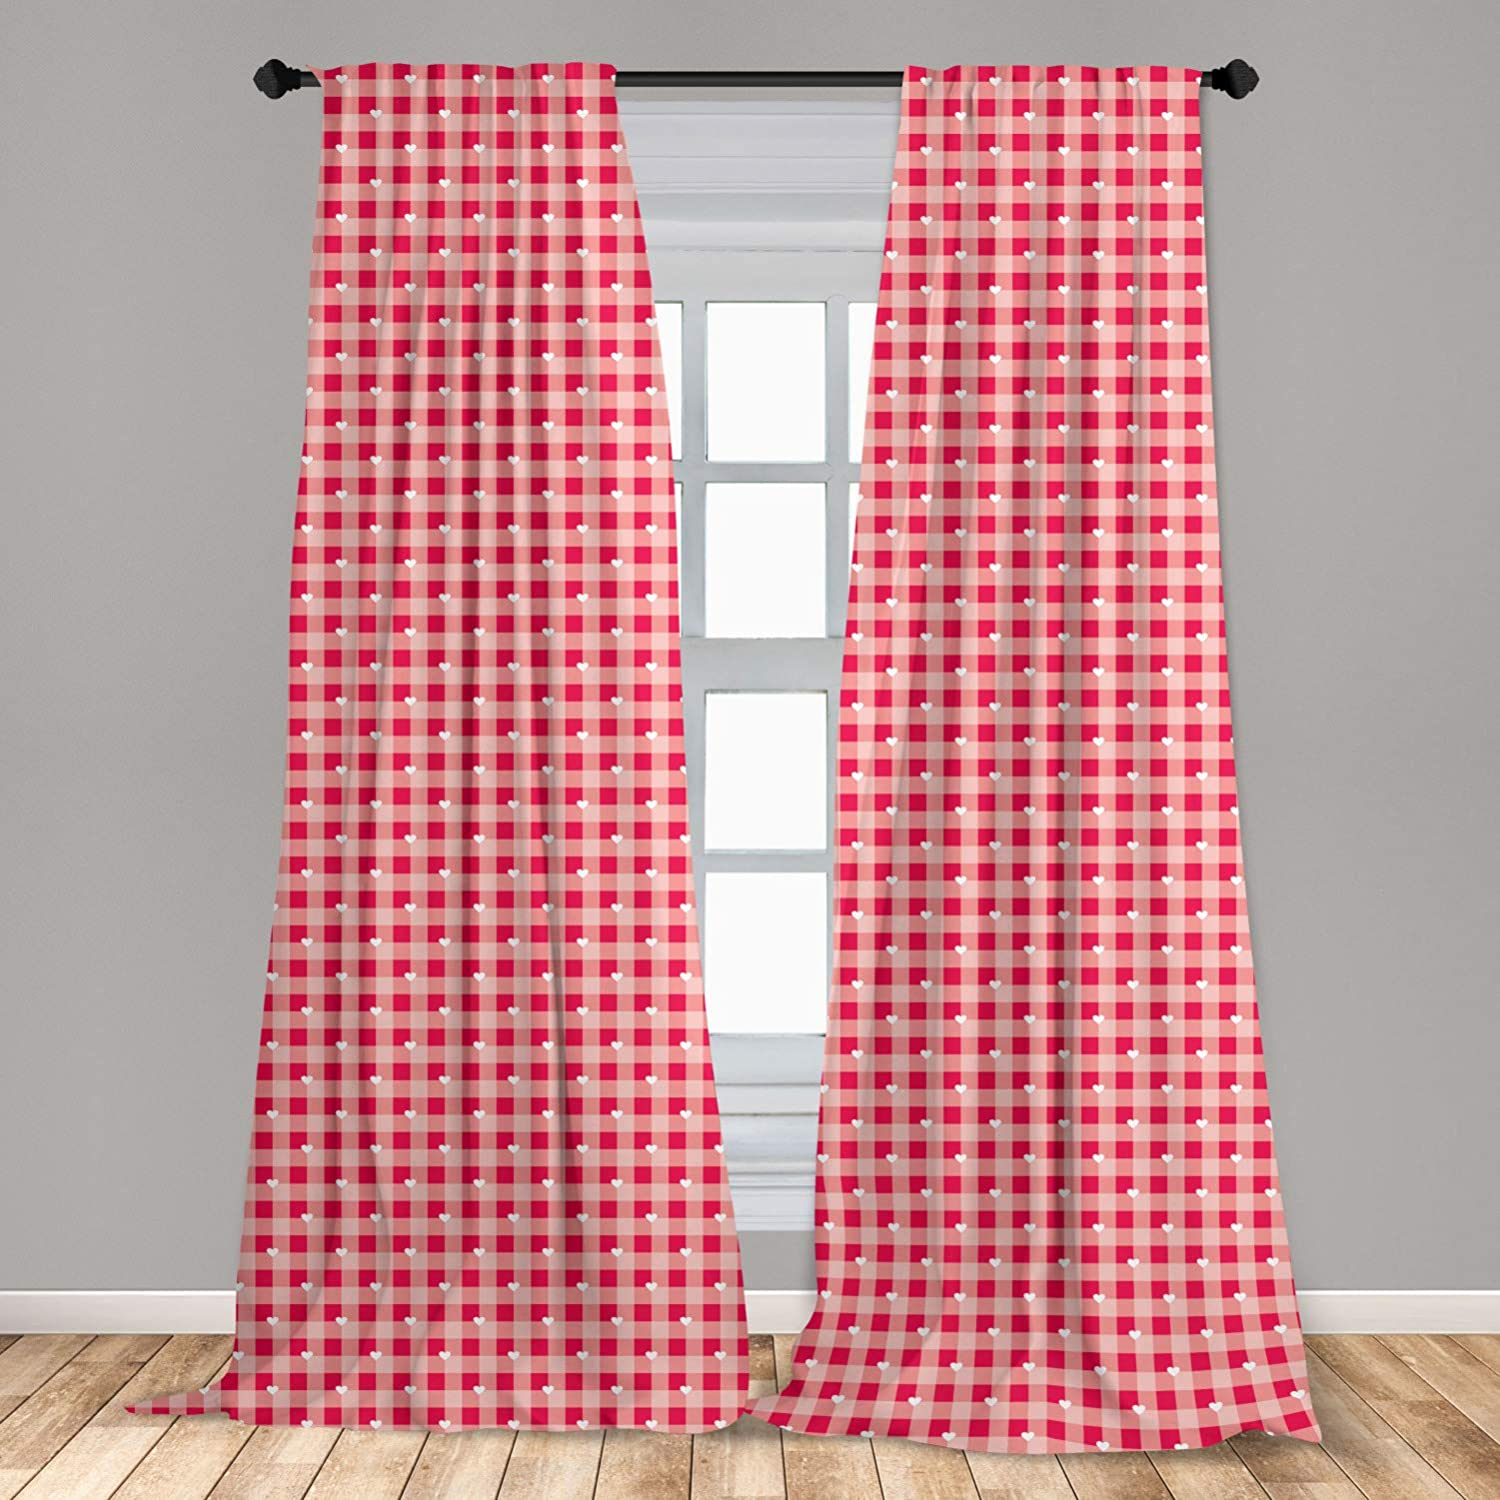 Lunarable Abstract 2 Panel Curtain Set, Heart Forms Over Striped Backdrop Girls Love Valentines Image, Lightweight Window Treatment Living Room Bedroom Decor, 56